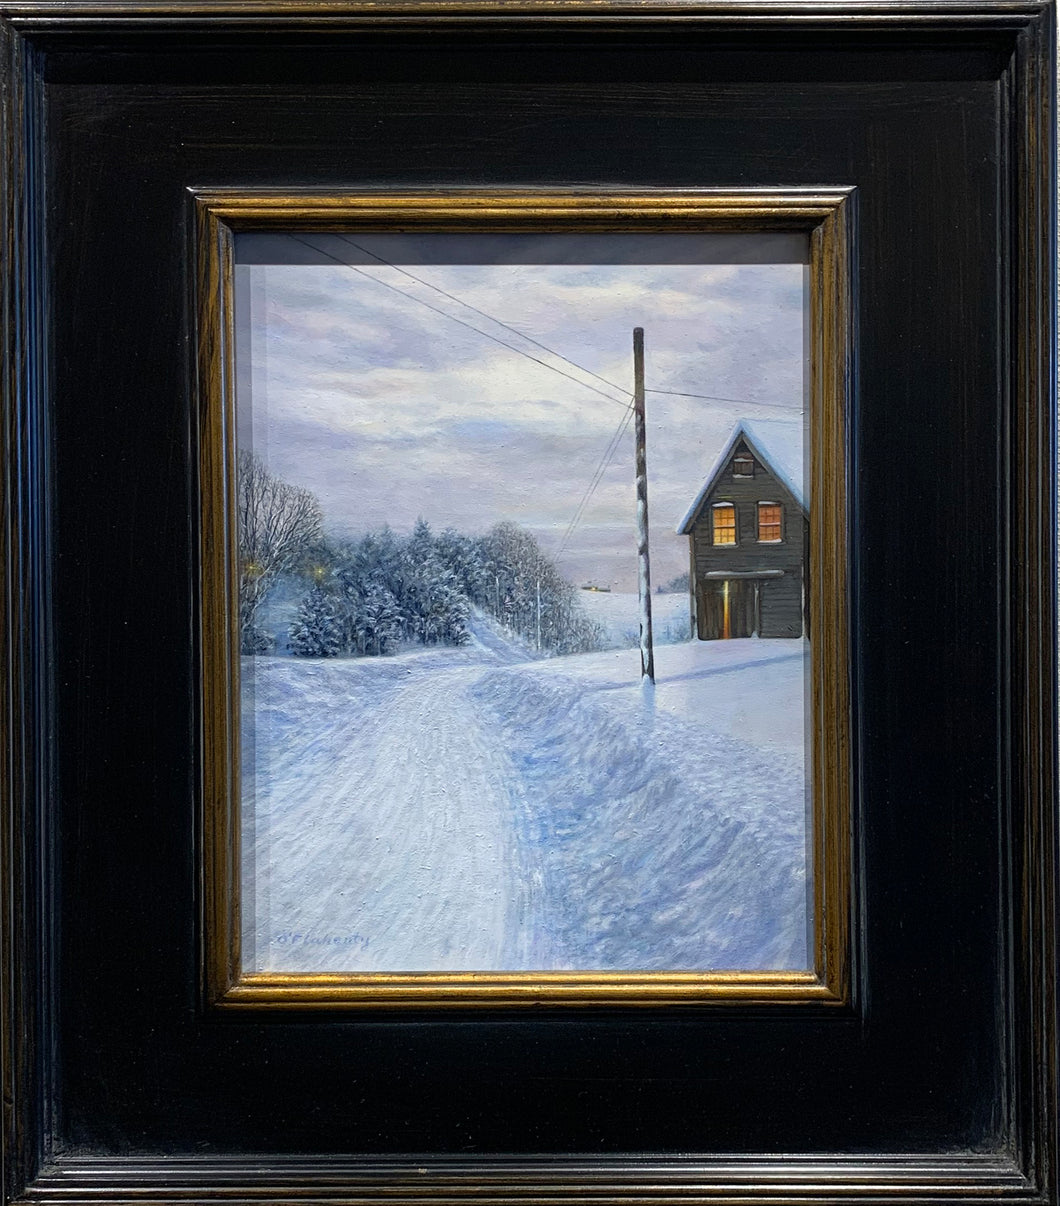 Winter Morning by artist Roderick O'Flaherty